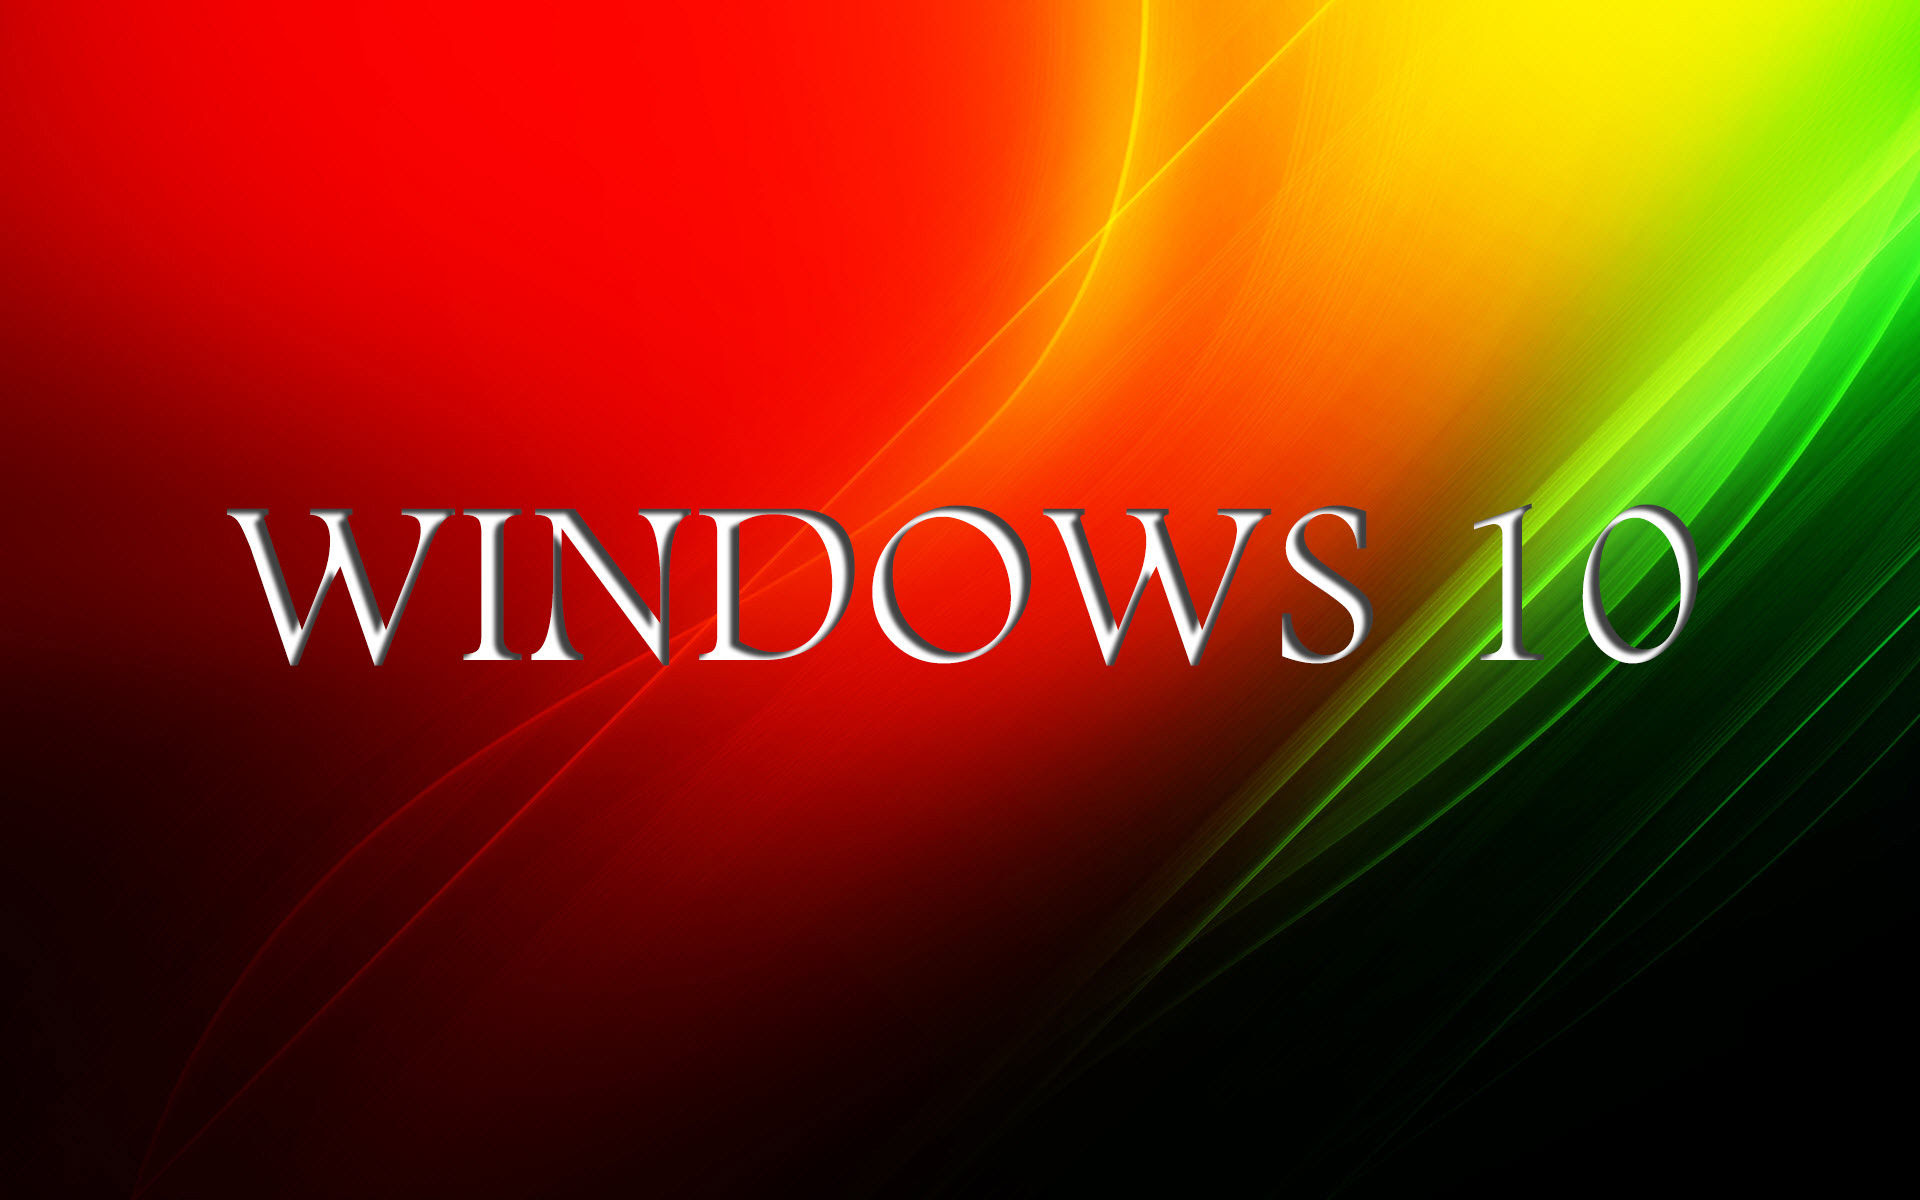 Wallpapers Windows 10 Maximumwall